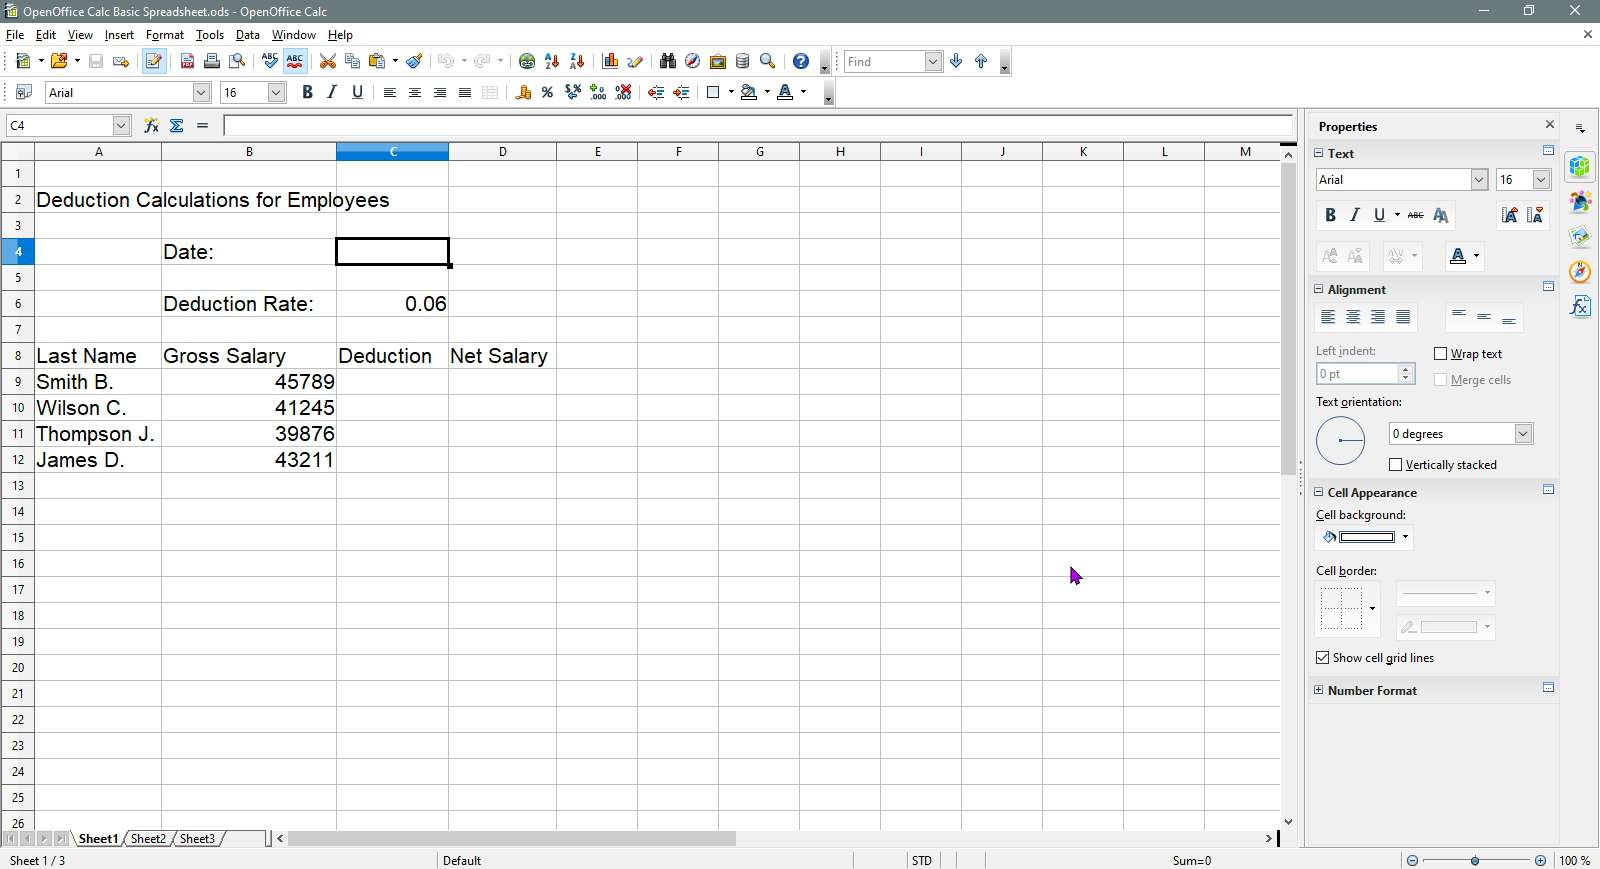 Cell C4 is selected in OpenOffice Calc.